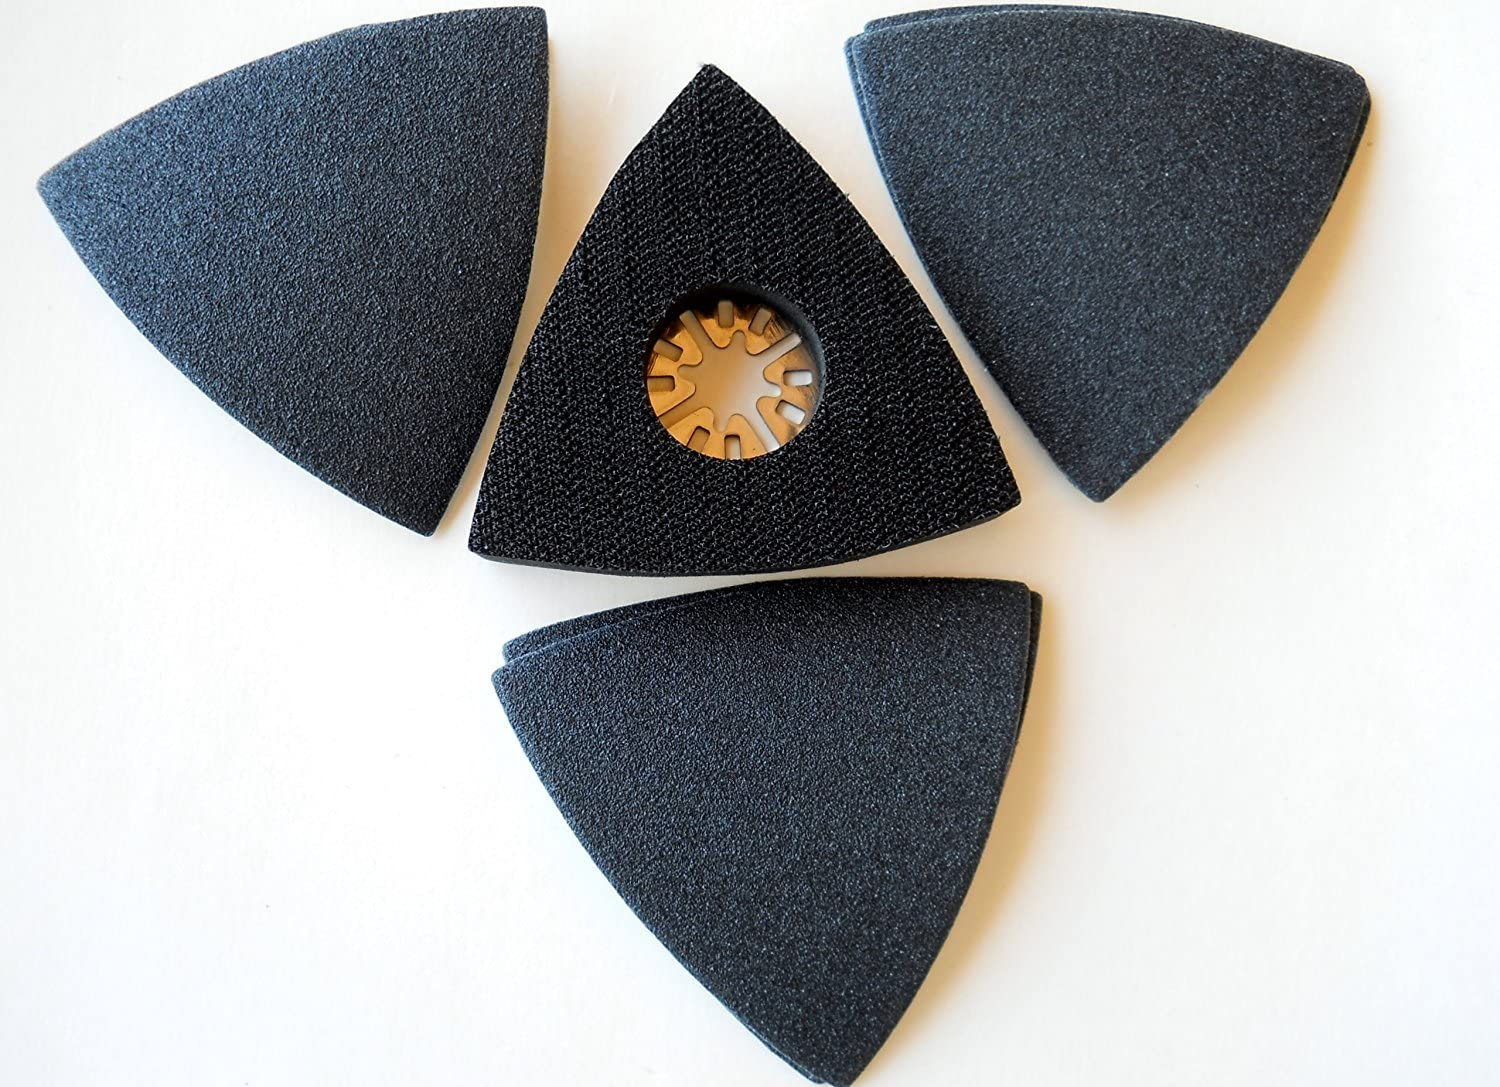 Combo Value Pack Manufacturer direct delivery - 3 inch with pad Velcro Triangular Uni sanding Max 42% OFF